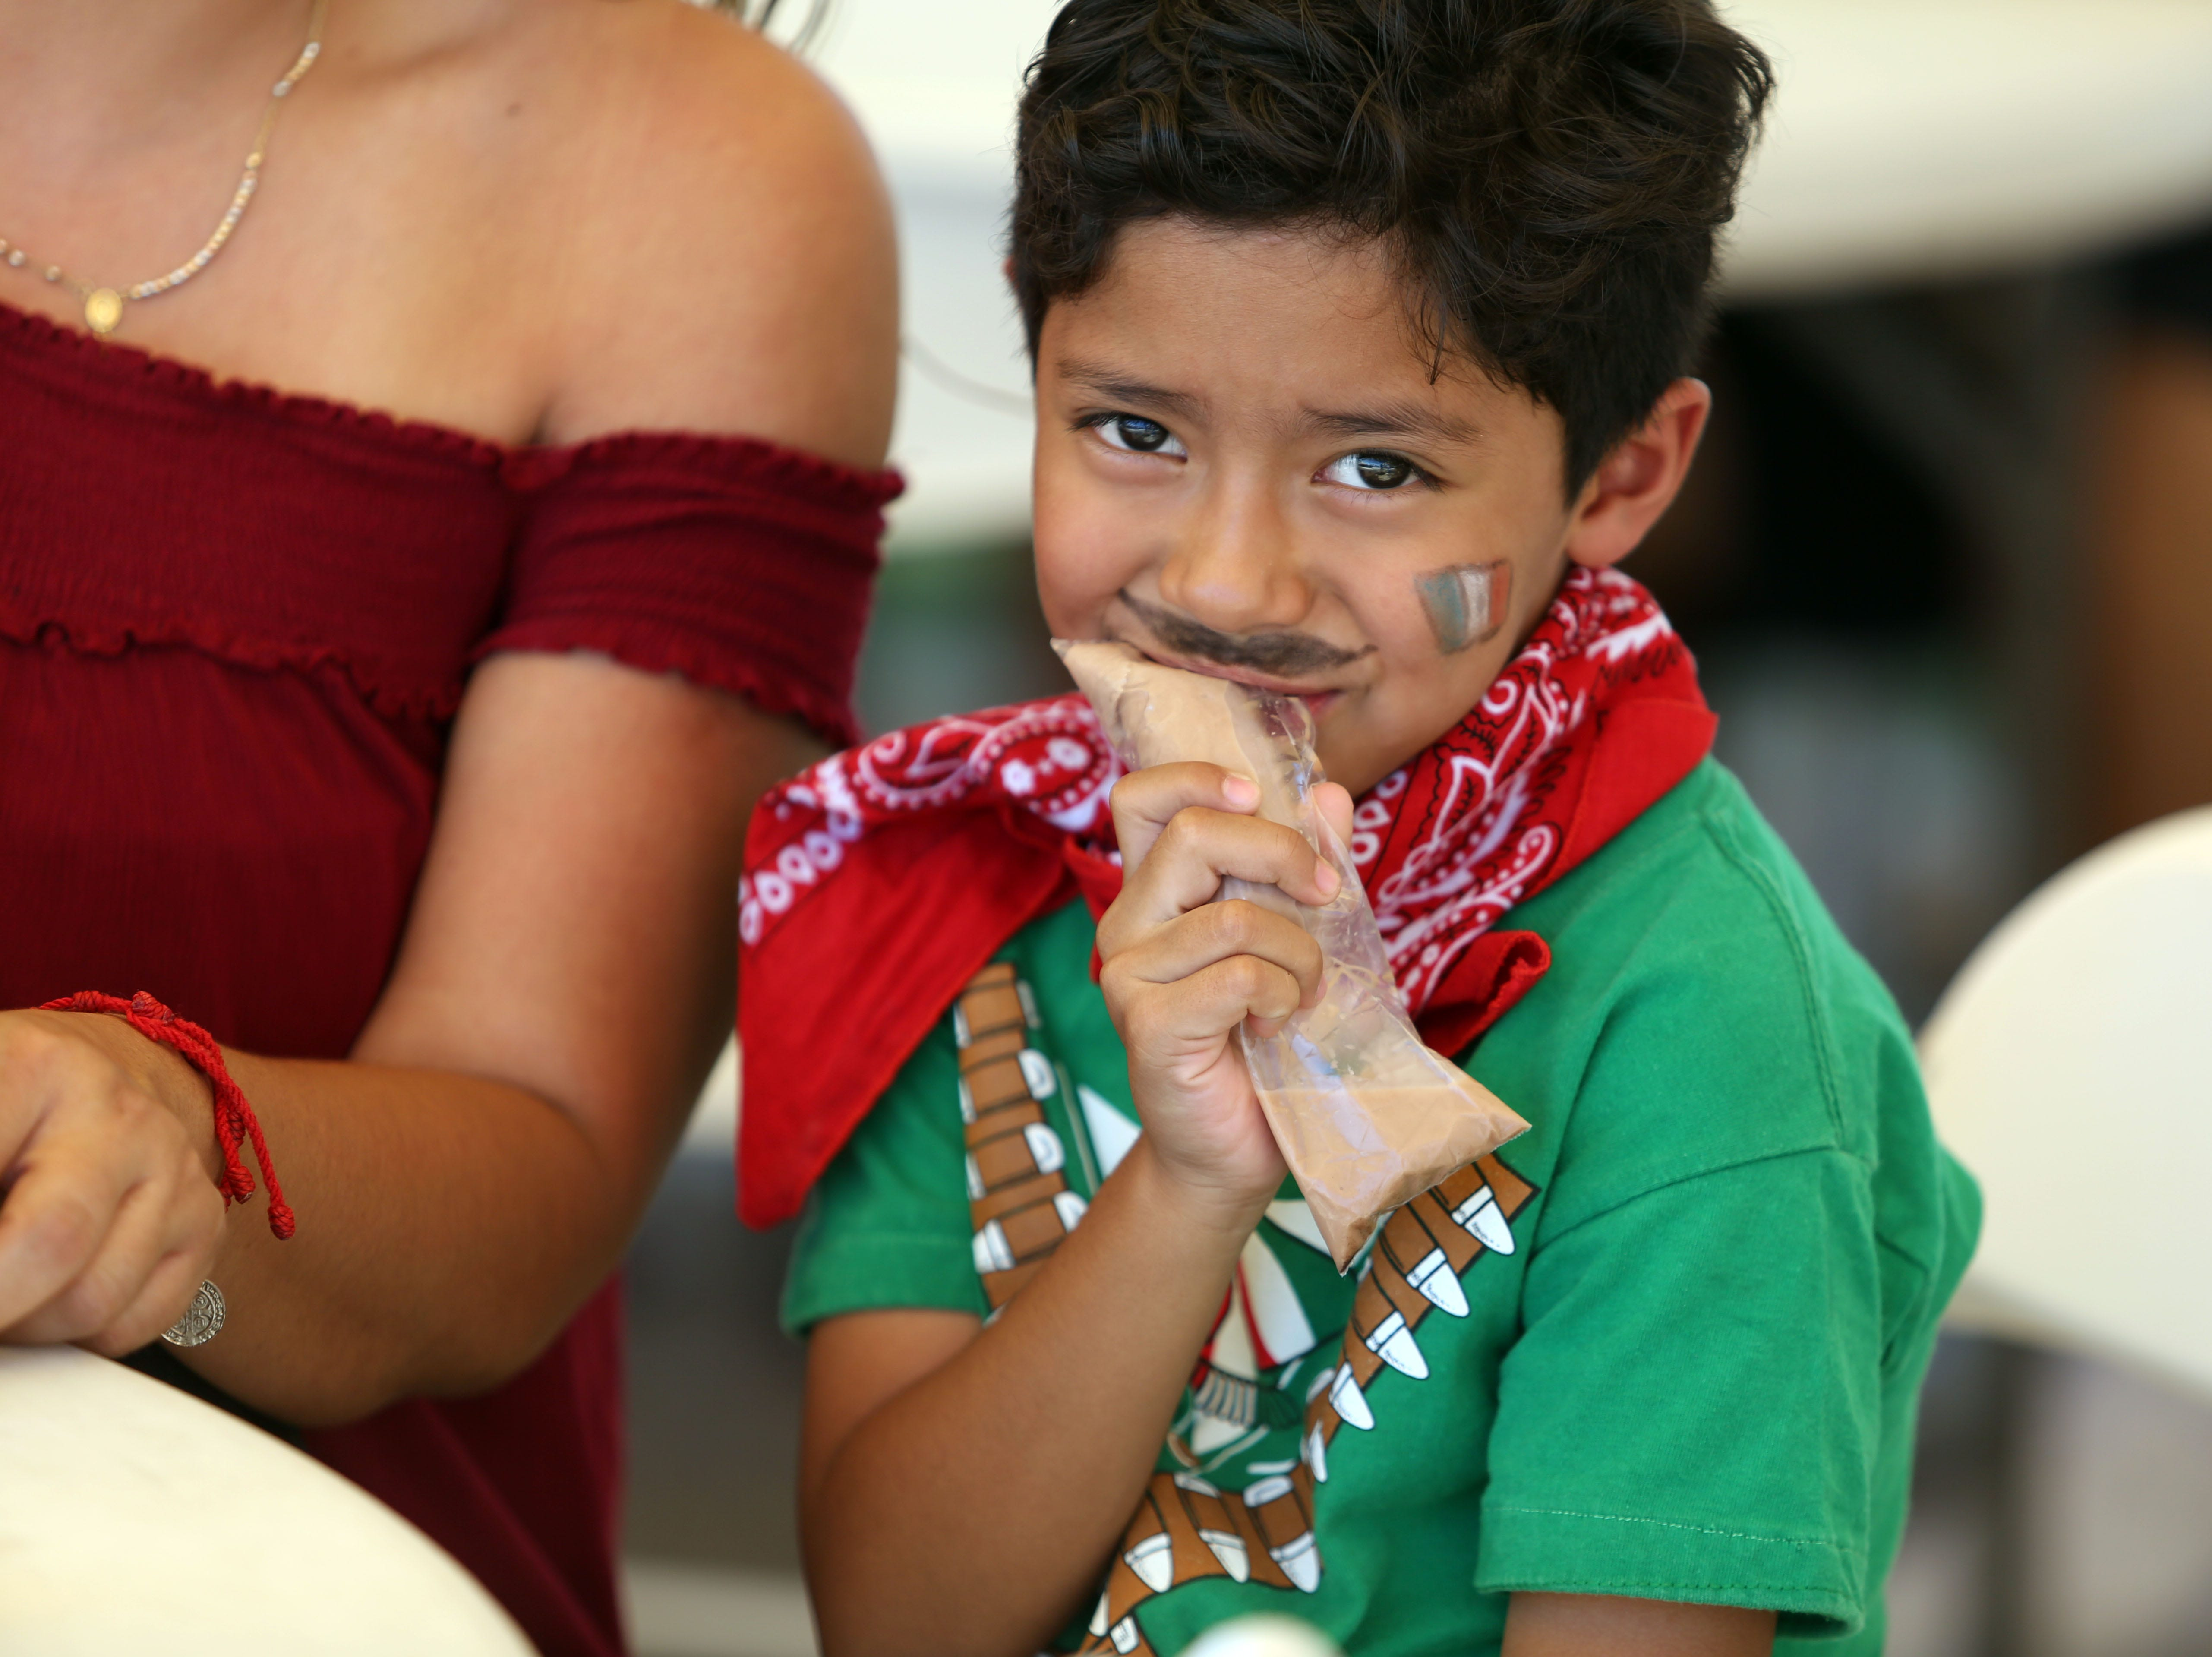 Sergio Bautista, 6, has a snack at the Mexican independence day celebration at Our Virgin of Guadalupe Church in Mecca on Saturday, September 15, 2018.